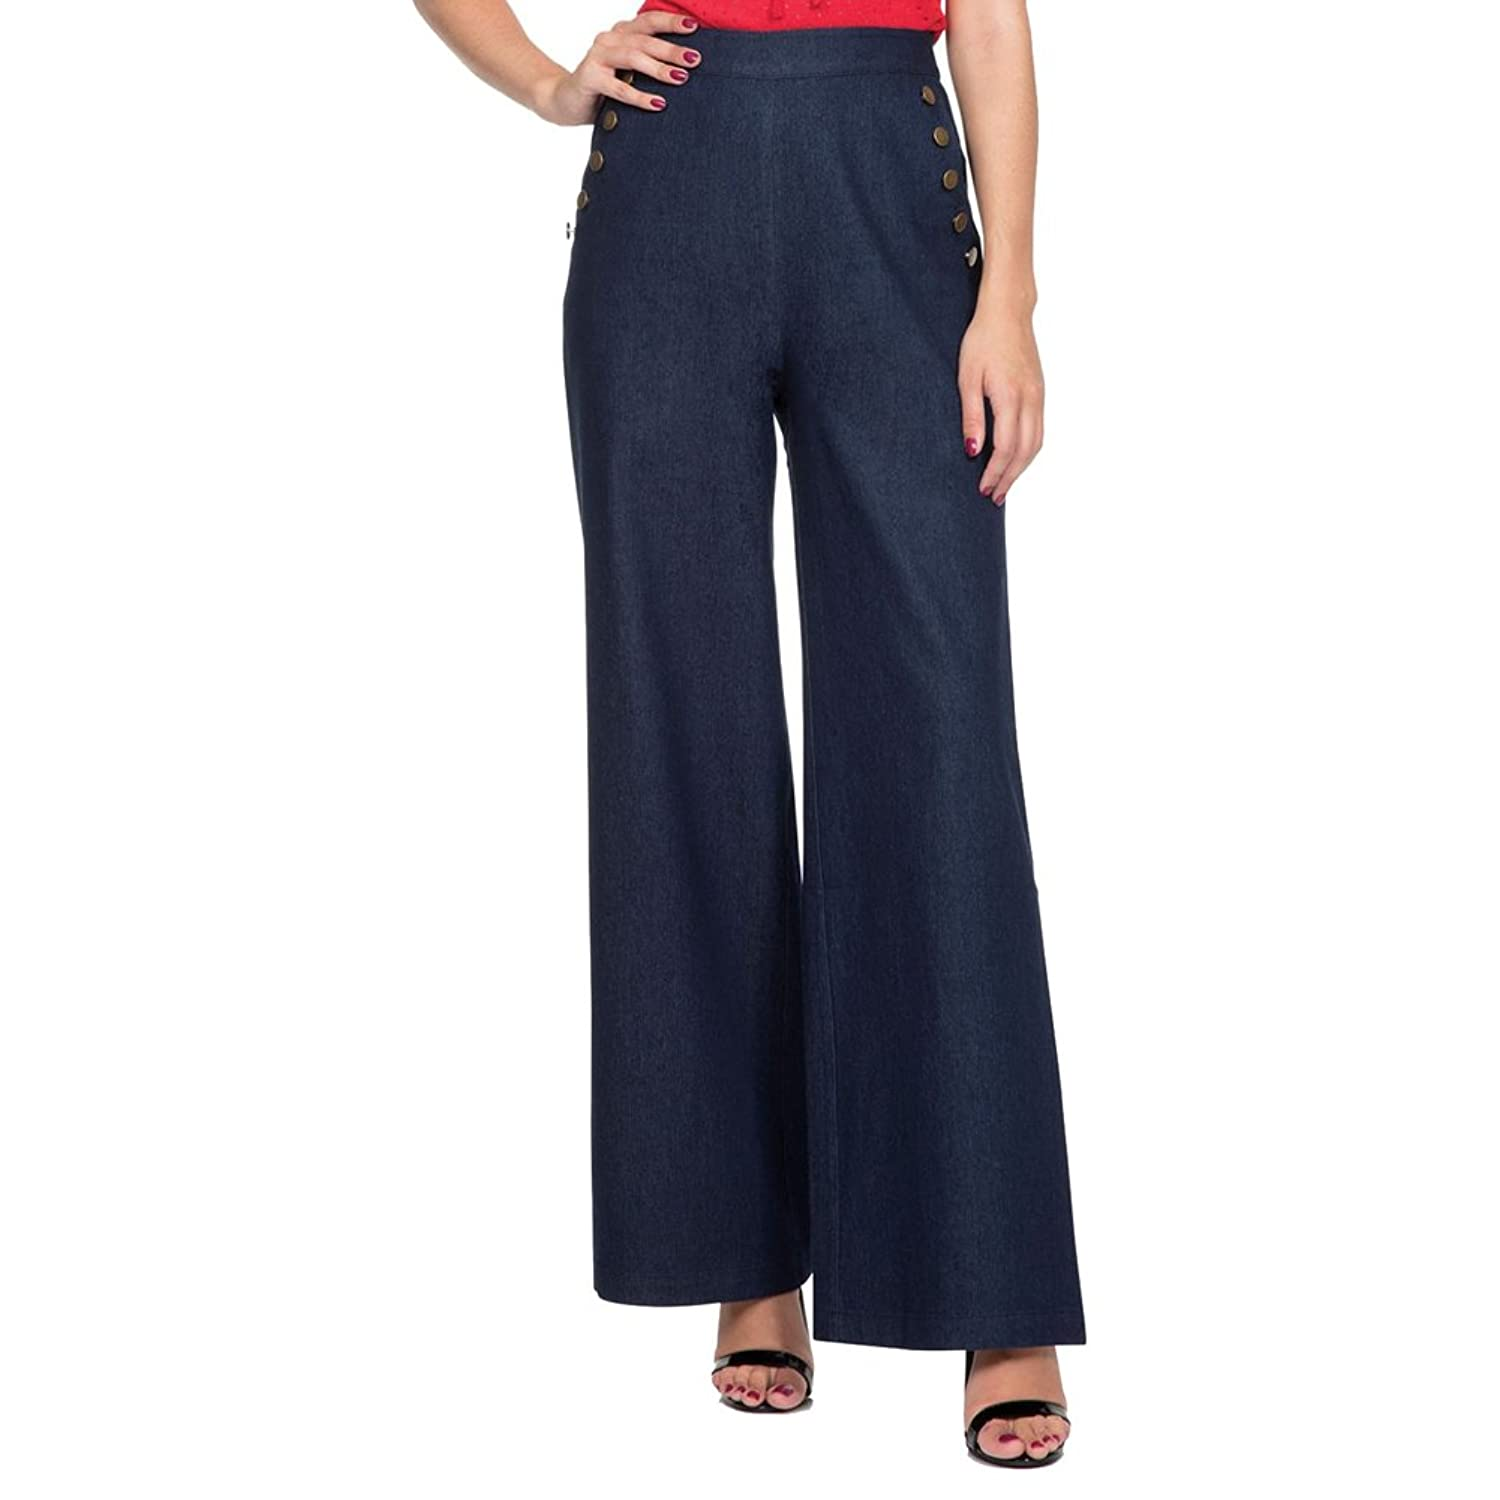 1930s Women's Pants and Beach Pajamas Womens Voodoo Vixen SAMANTHA Nautical Denim Trousers Blue $52.99 AT vintagedancer.com